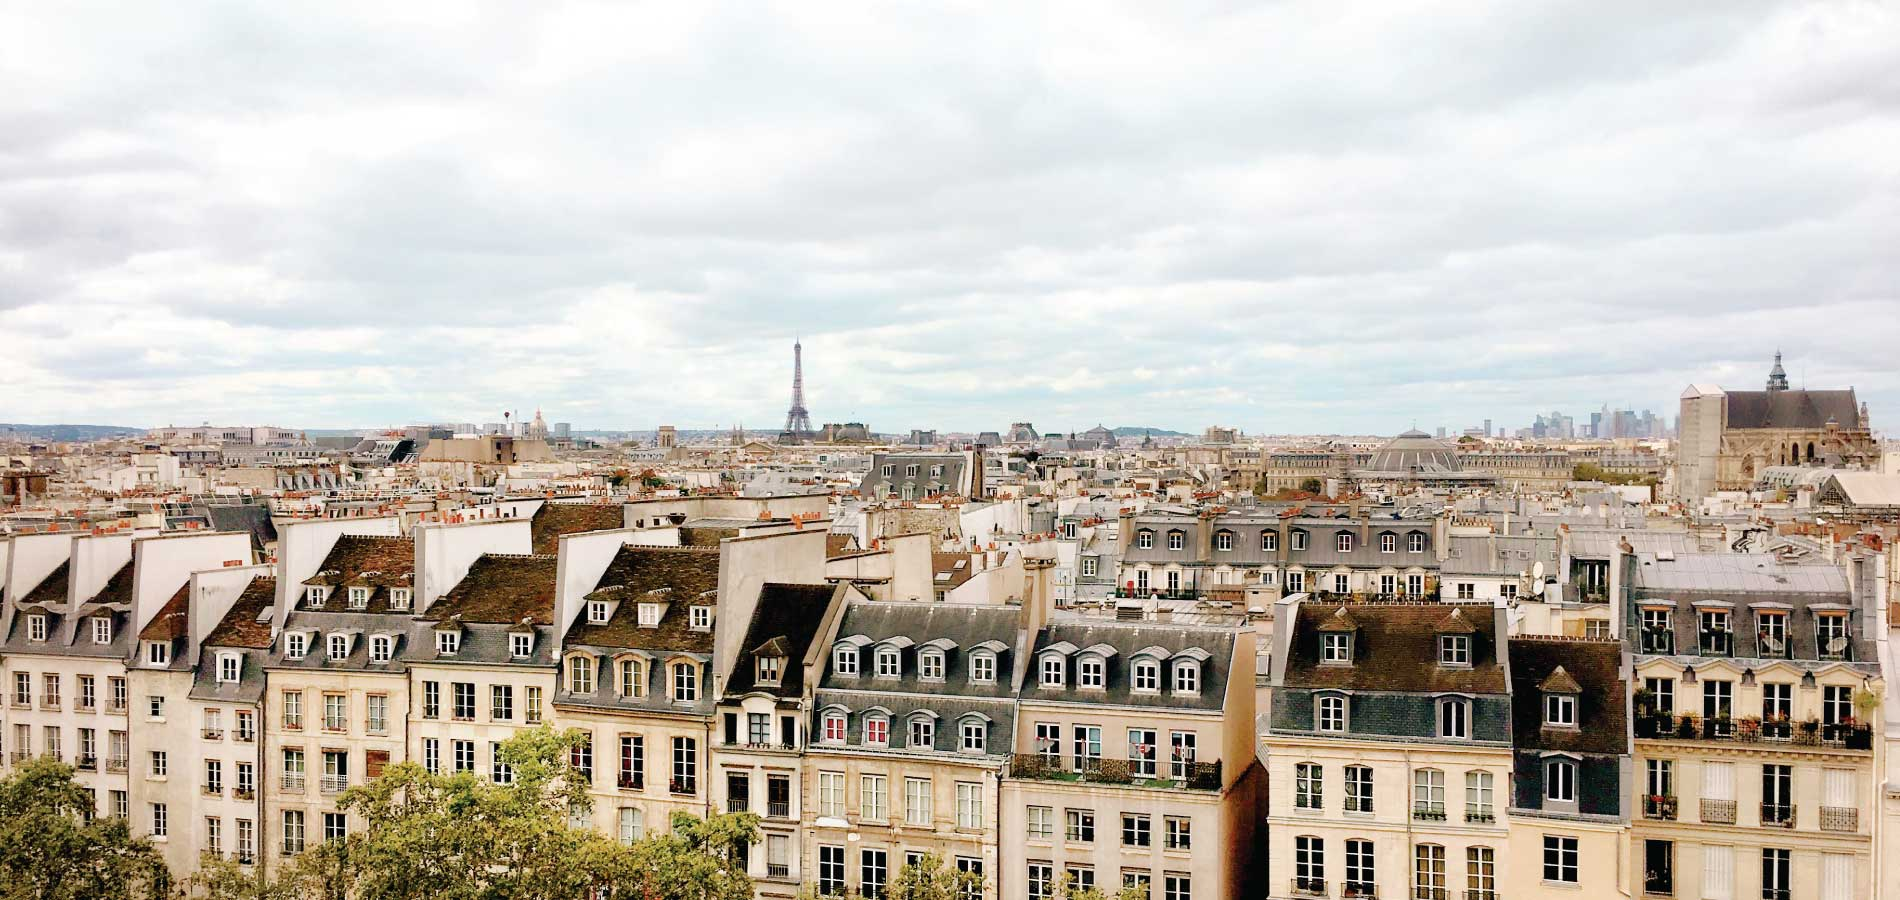 Enjoy your own pied-à-terre in Paris - Sky view of Paris with Eiffel Tower in the distance